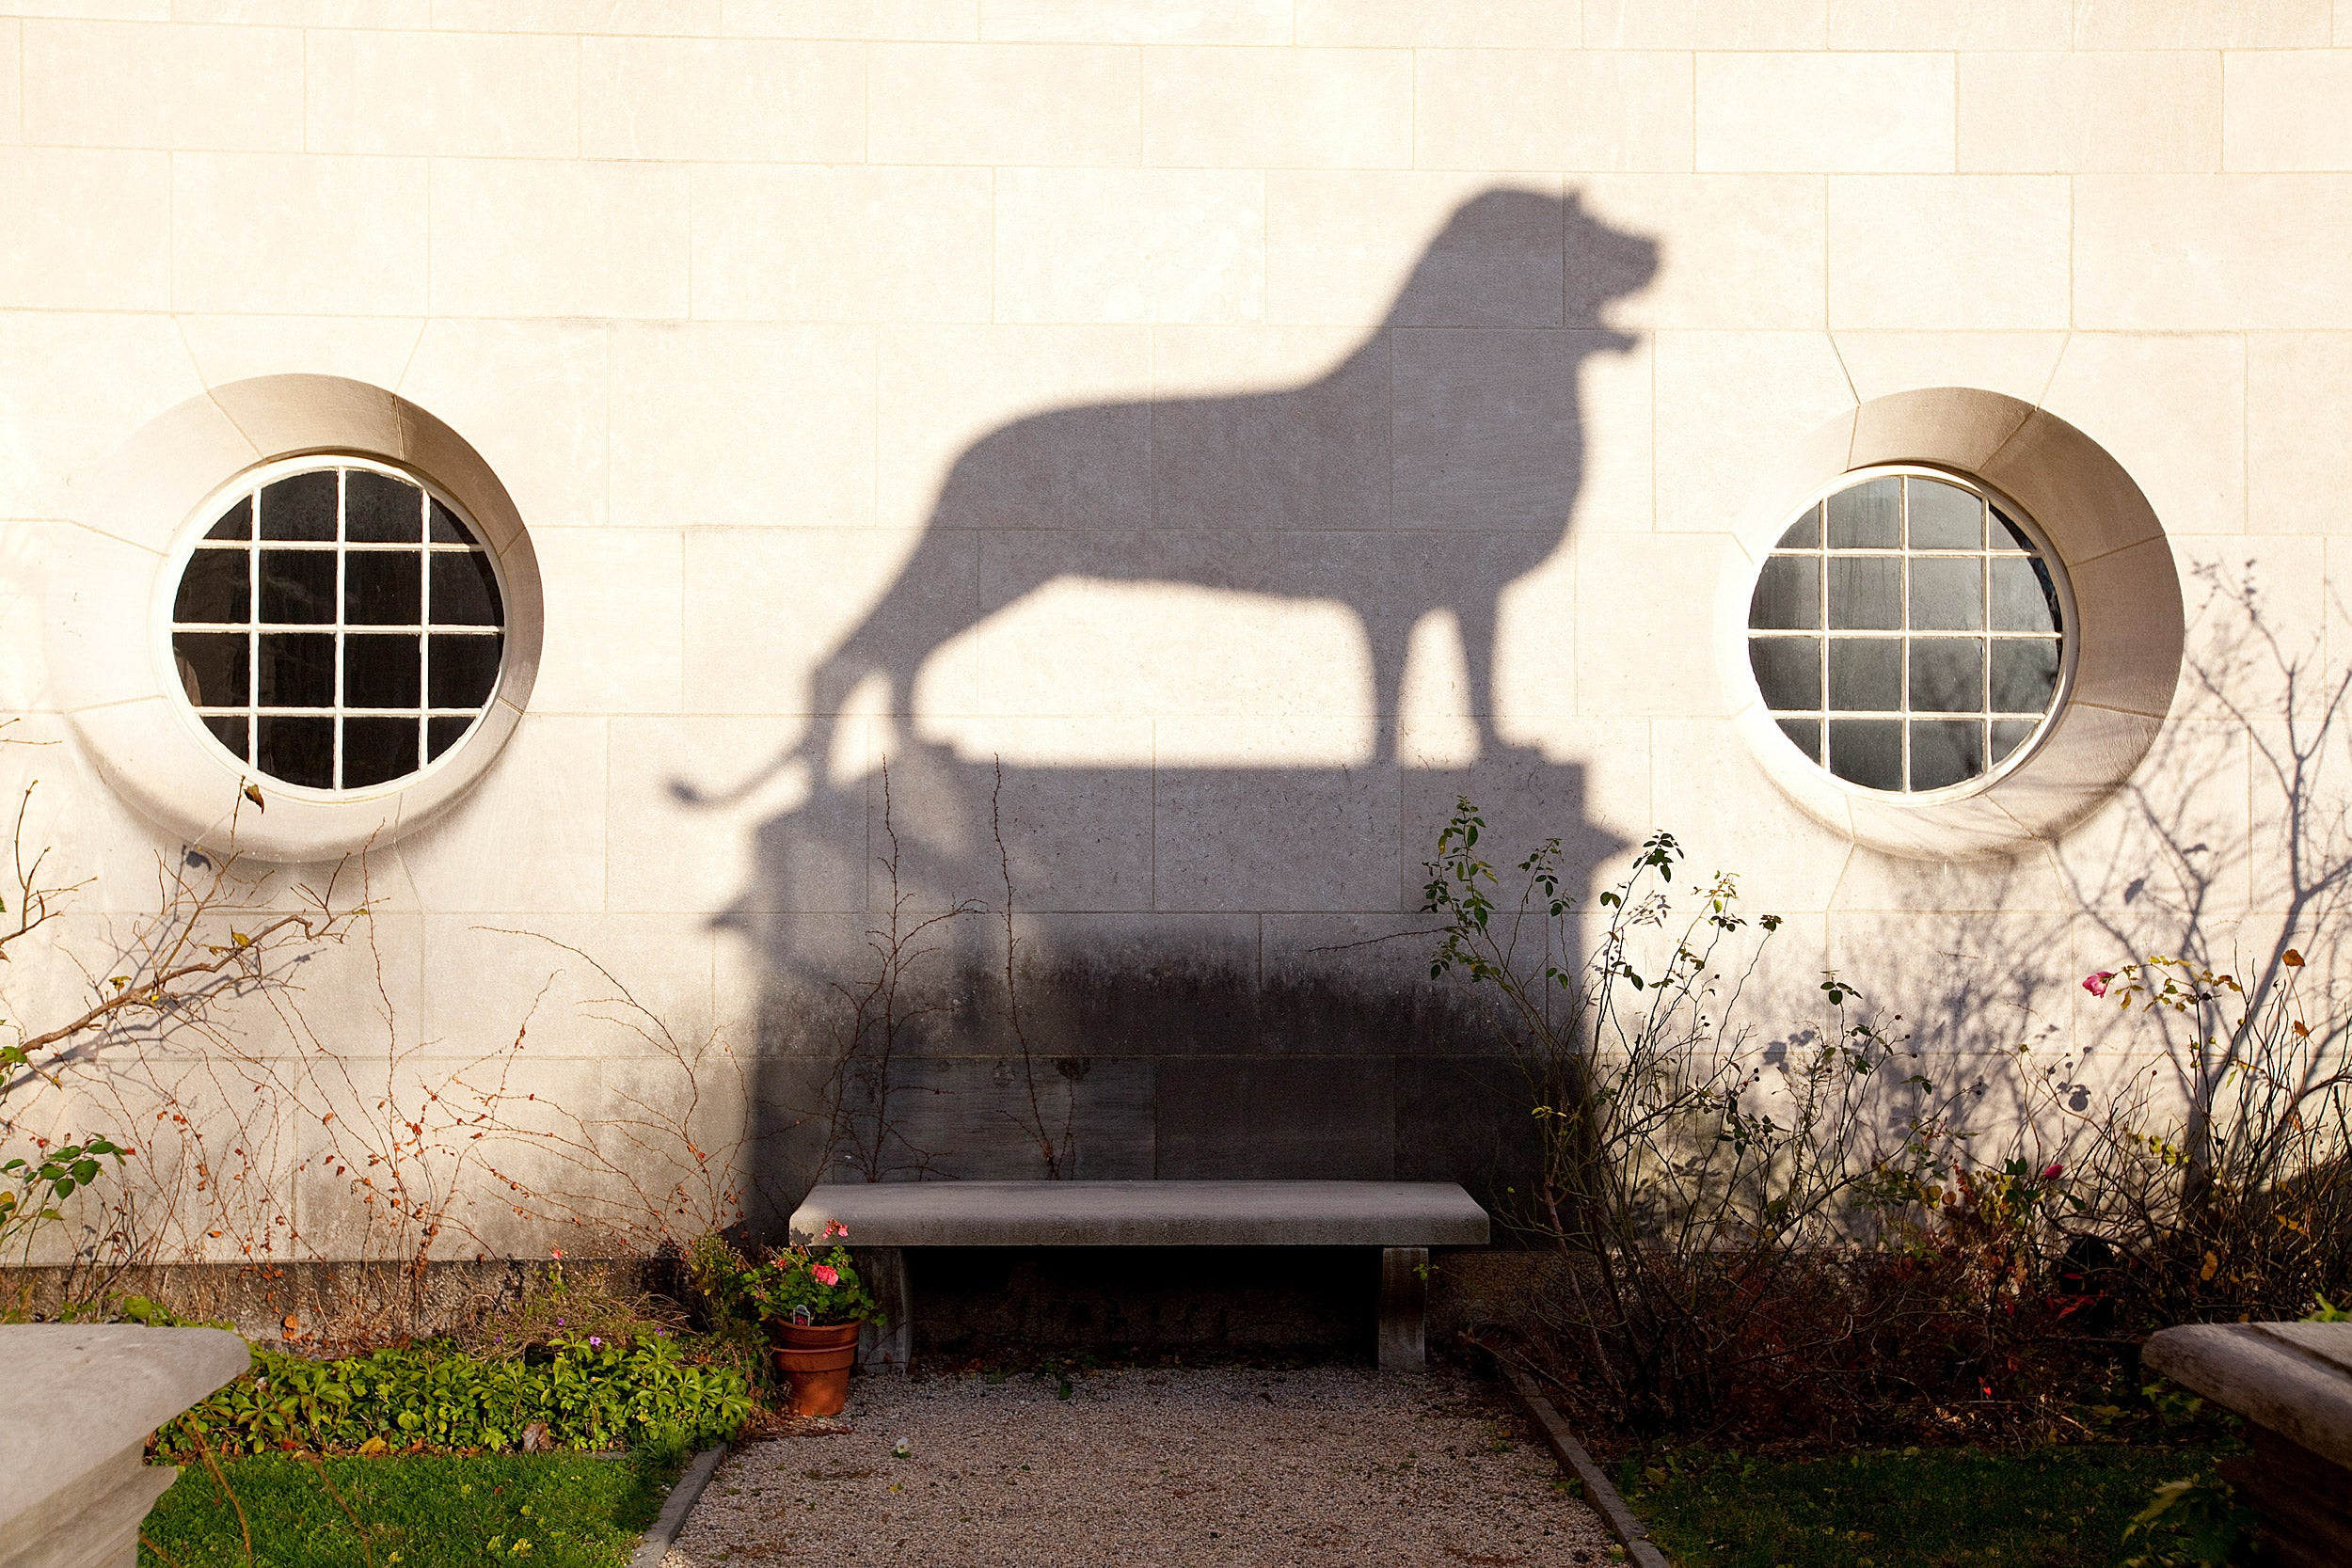 Shadow of bronze lion casts shadow on the wall at Busch Hall garden.